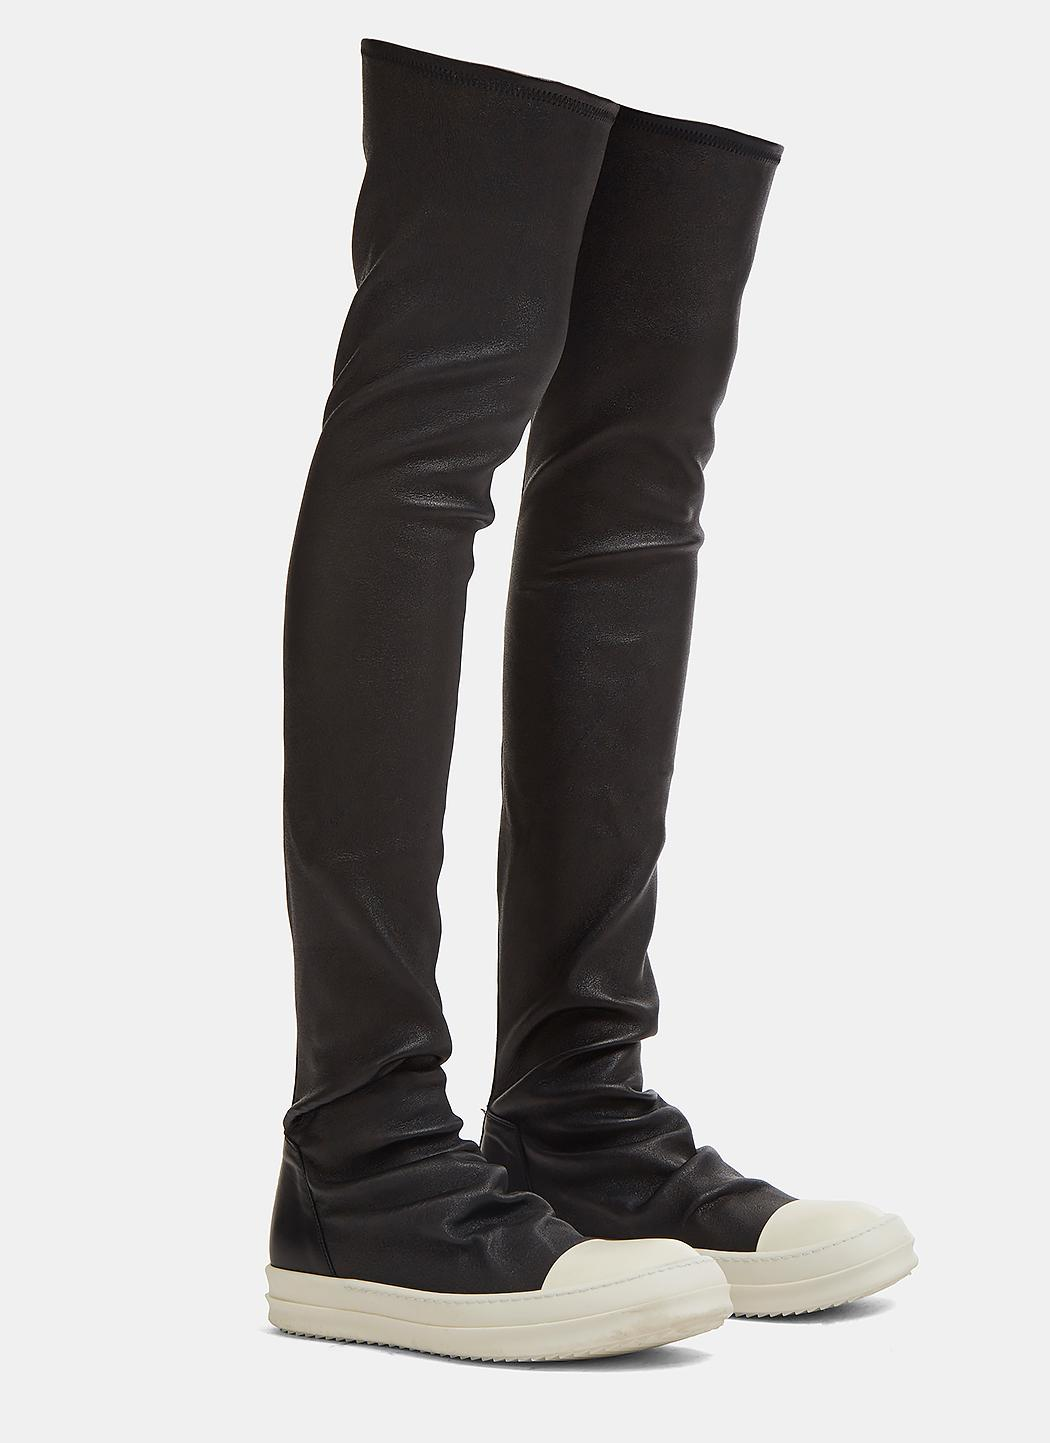 43d4f3552336 Lyst - Rick Owens Knee Boots in Black